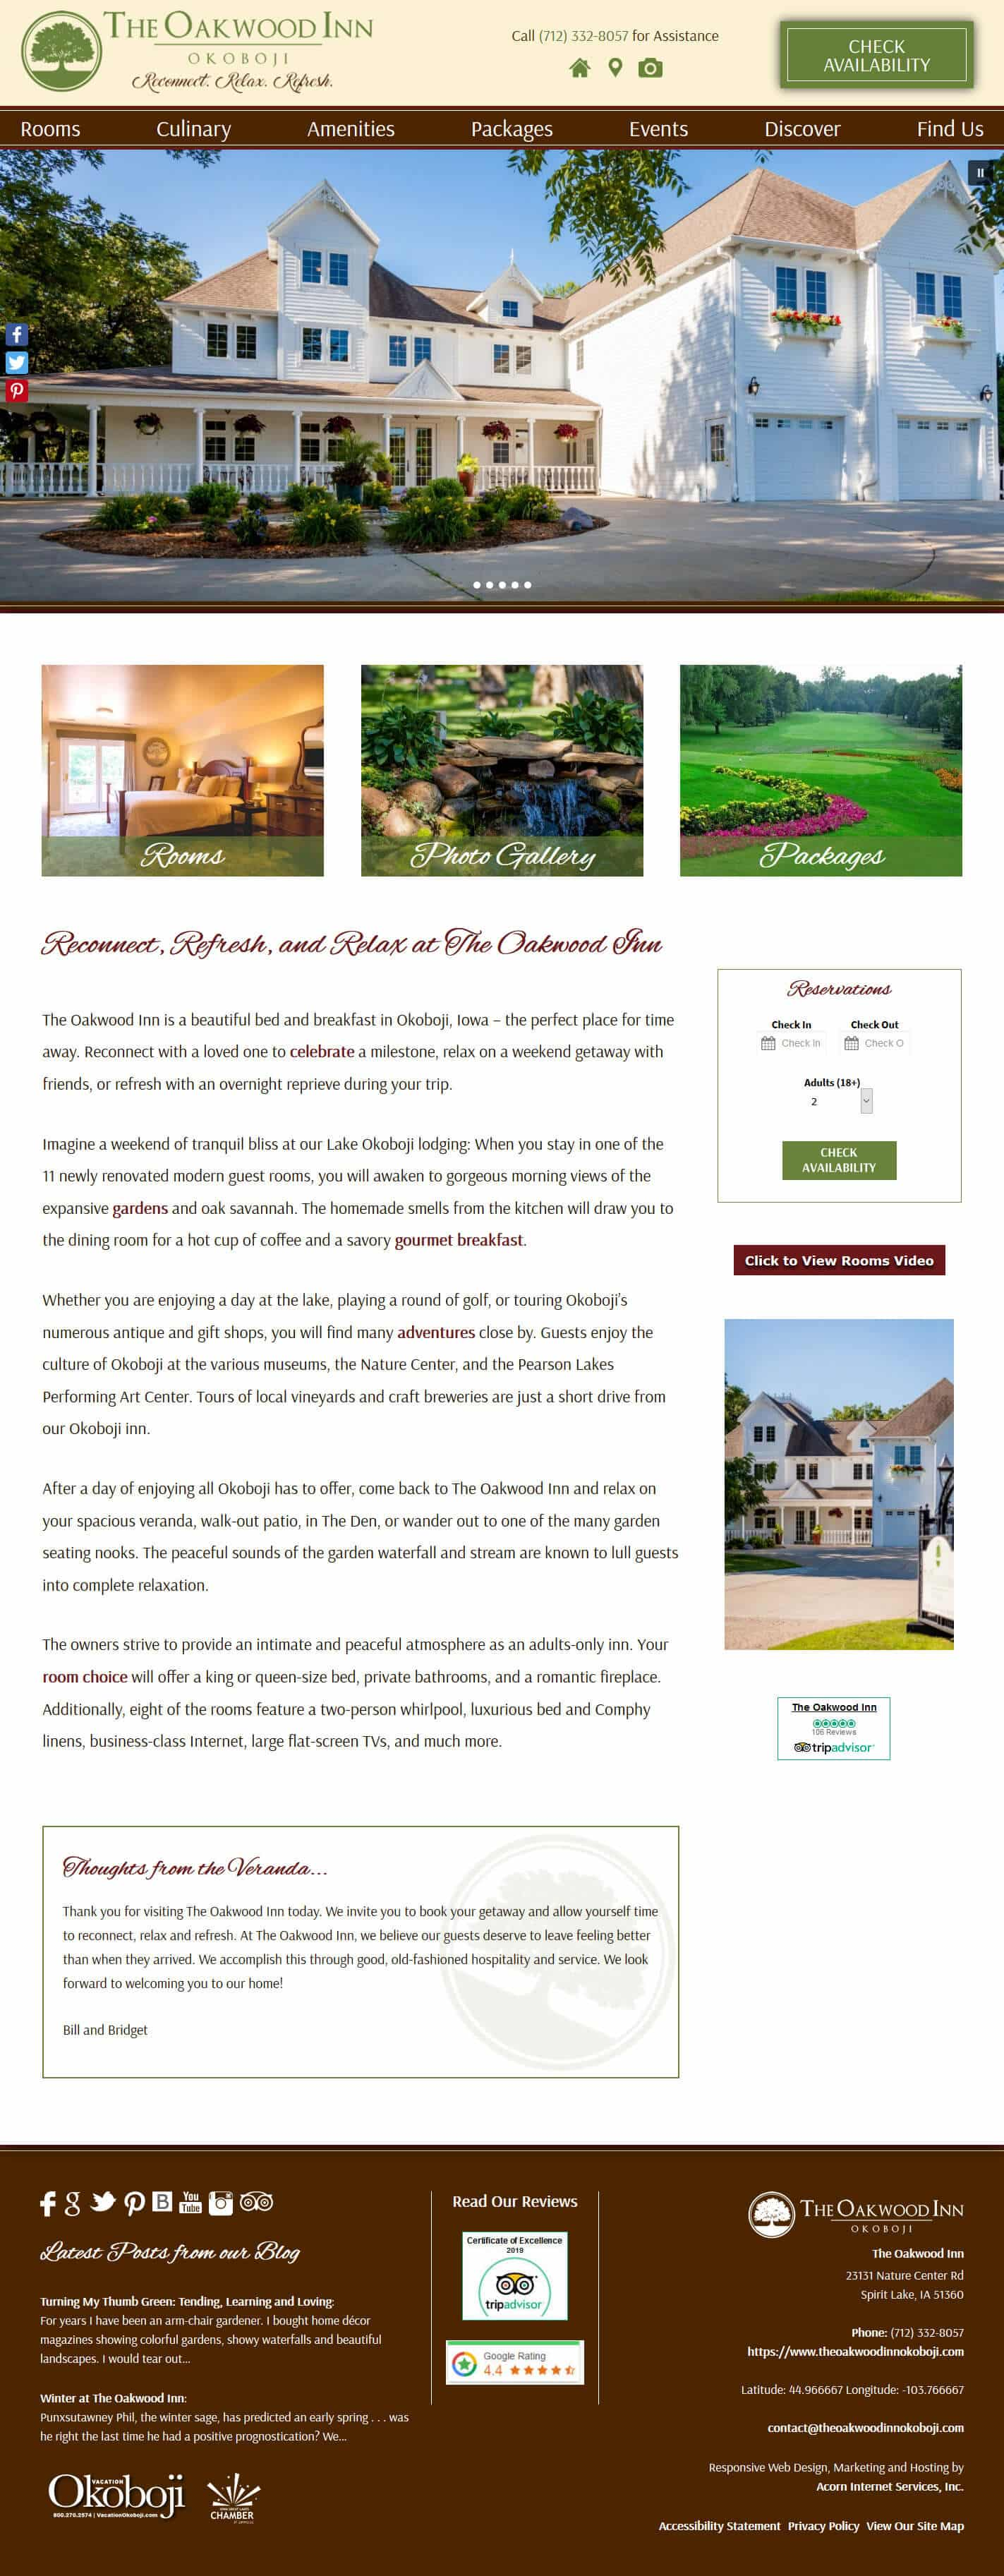 The Oakwood Inn home page